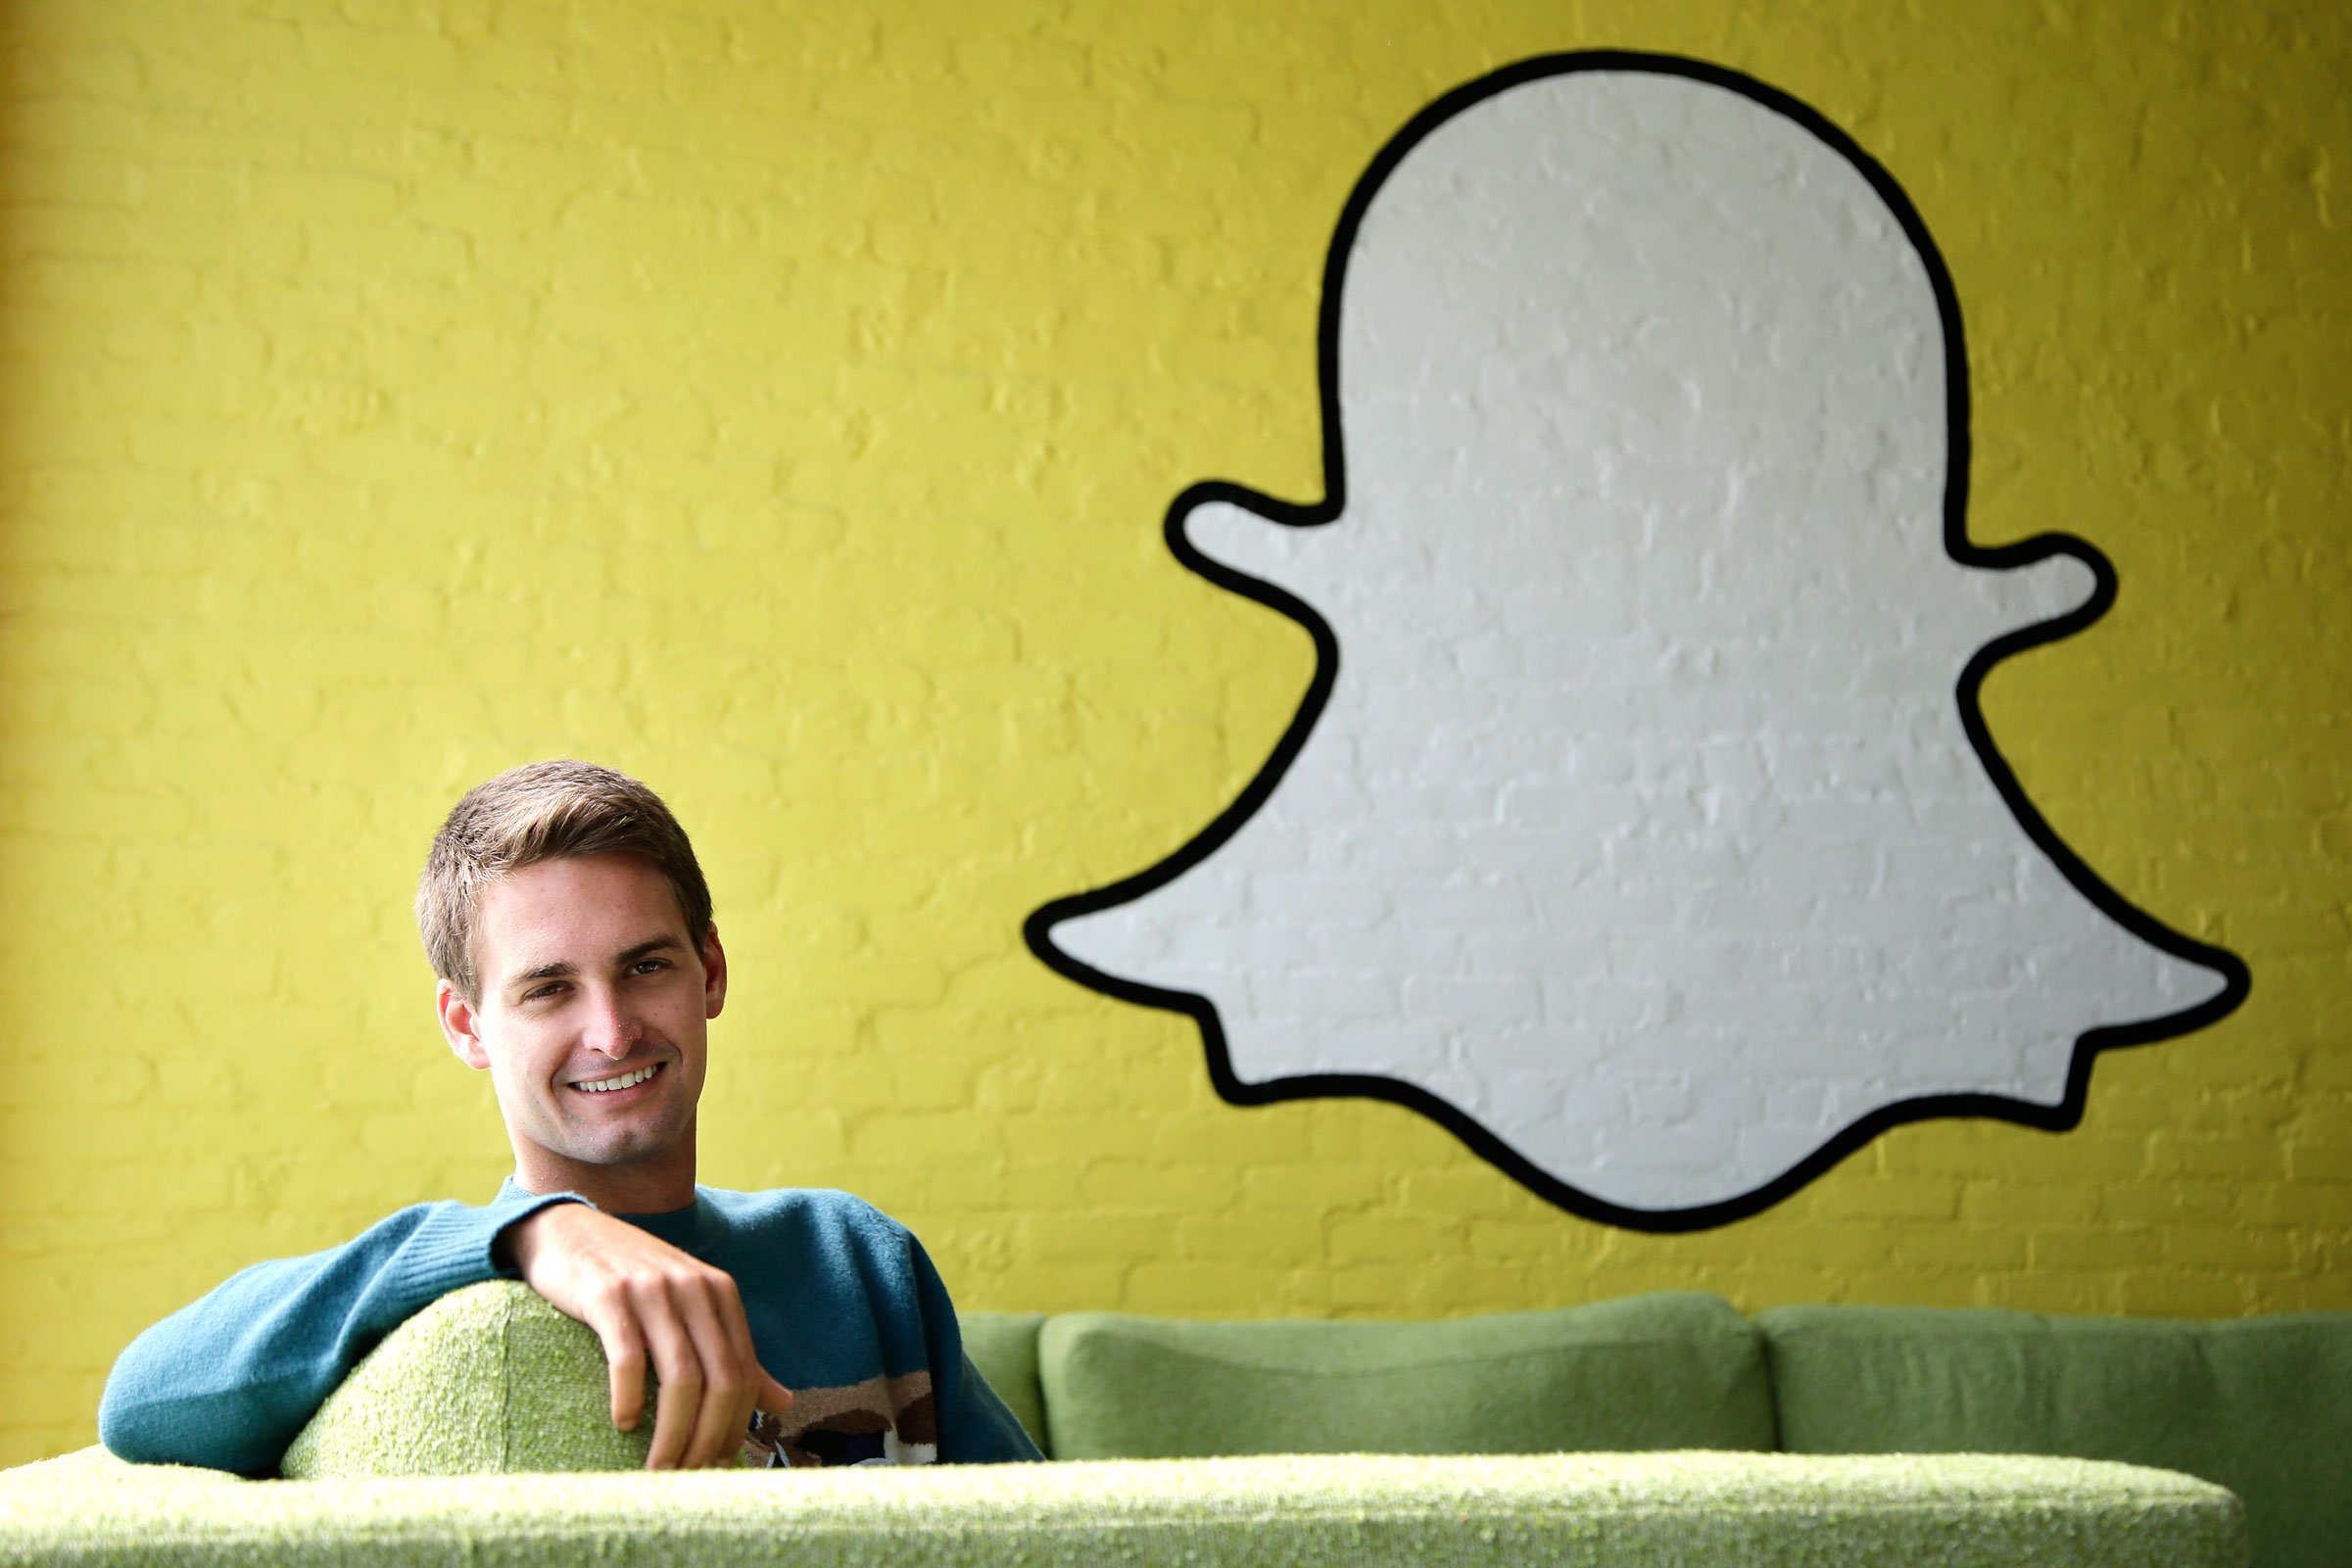 This Thursday, Oct. 24, 2013 file photo shows Snapchat CEO Evan Spiegel in Los Angeles. Snapchat, the disappearing-message service, has been quiet following a security breach that allowed hackers to collect the usernames and phone numbers of millions of its users. Snapchat said Thursday, Jan. 2, 2014 that it is assessing the situation, but did not have further comment. Earlier in the week, hackers reportedly published 4.6 million Snapchat usernames and phone numbers on a website called snapchatdb.info, which has since been suspended. (AP Photo/Jae C. Hong)